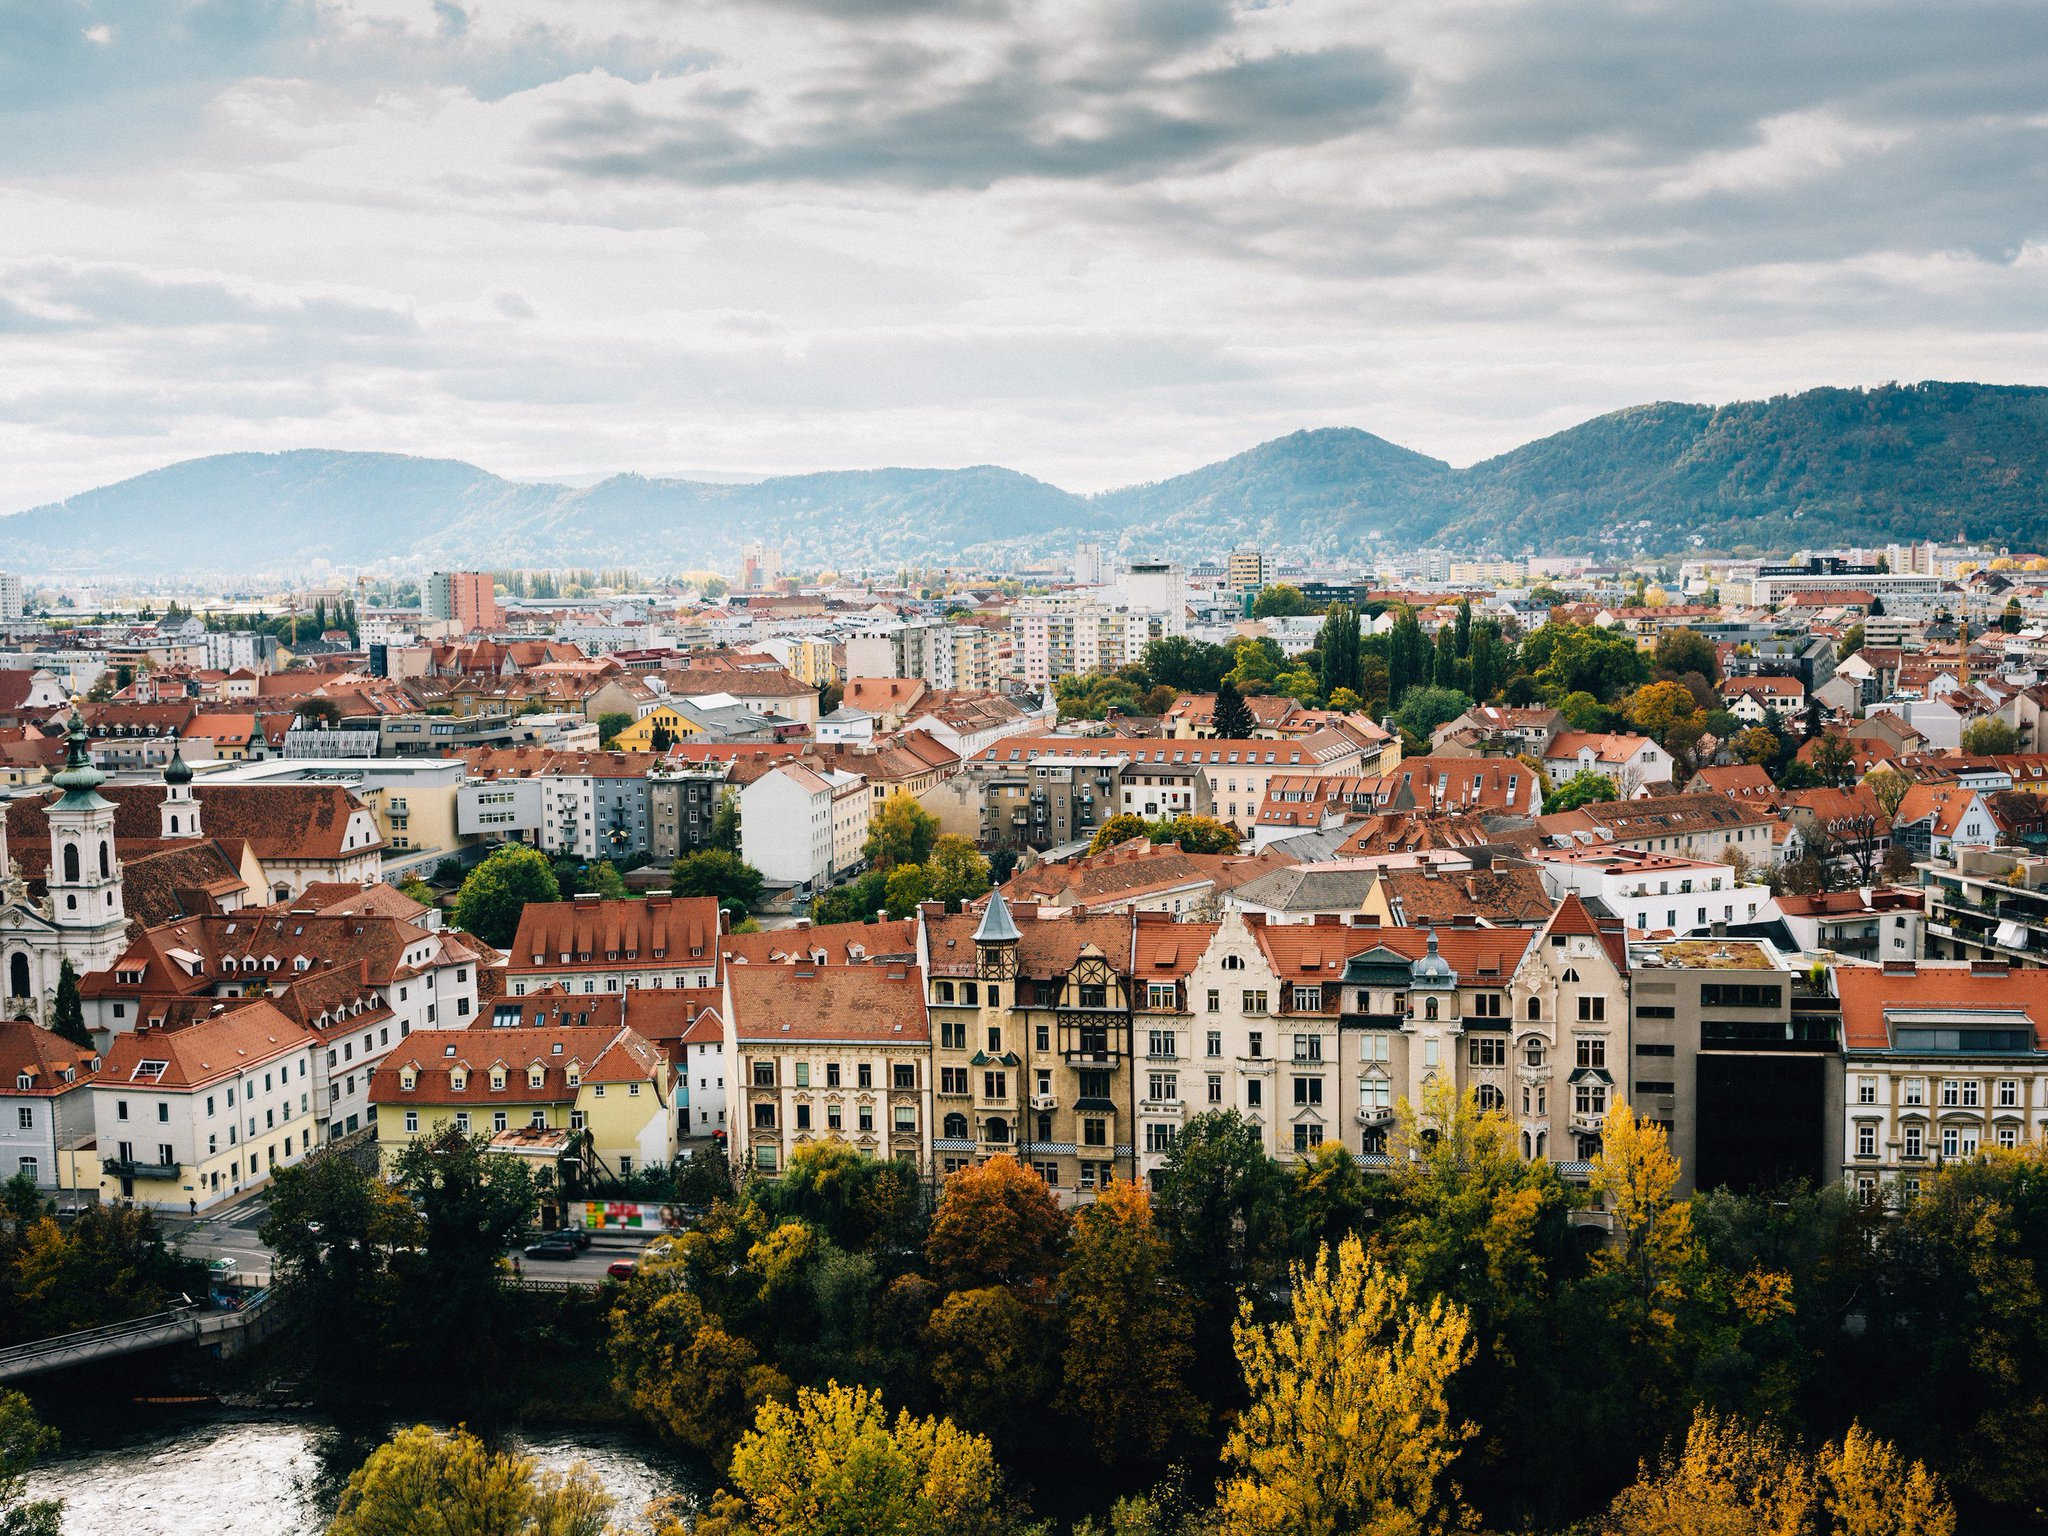 Why you should visit Austria's most underrated city (and what to do once you get there) https://t.co/G6reU9Sfhb https://t.co/IgwBsiqgdw